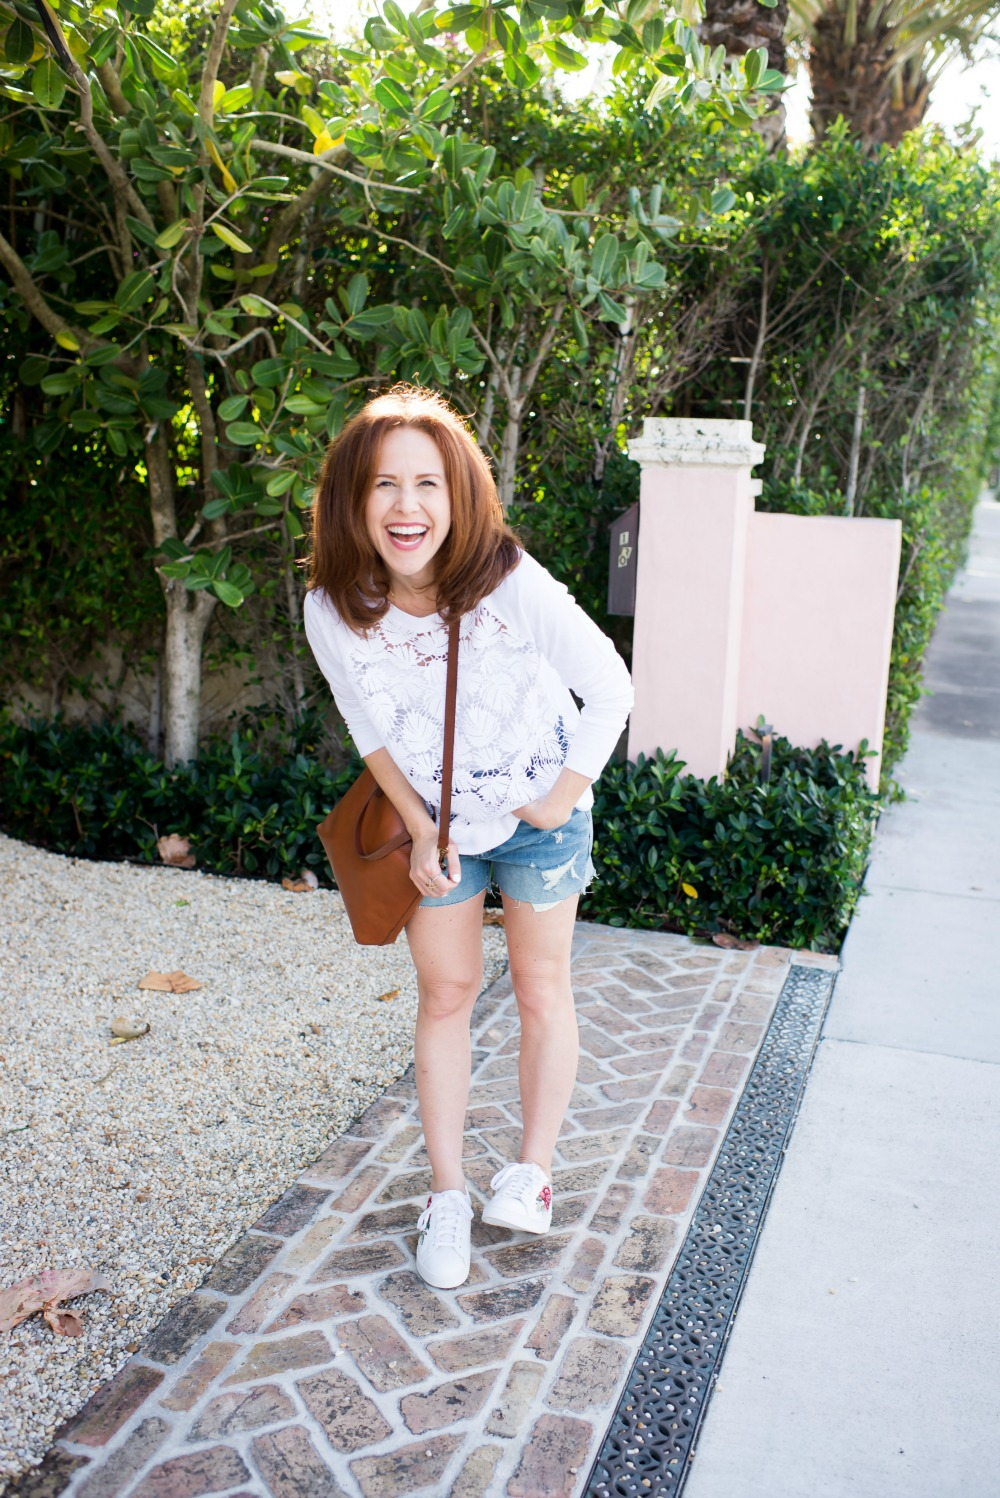 Alyson Seligman of The Modern Savvy talks how to style sweatshirts for spring